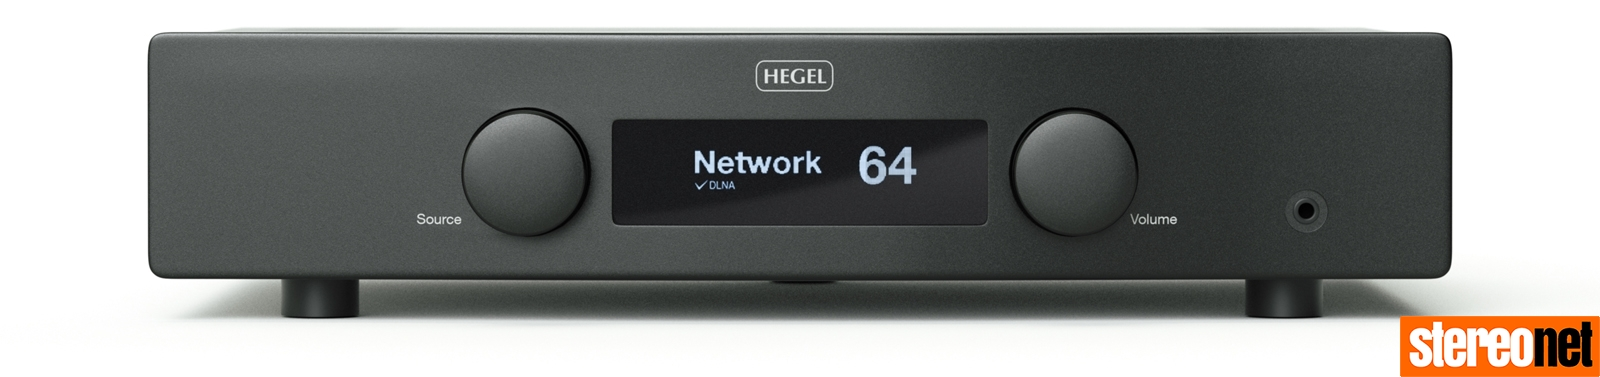 Hegel H95 Review